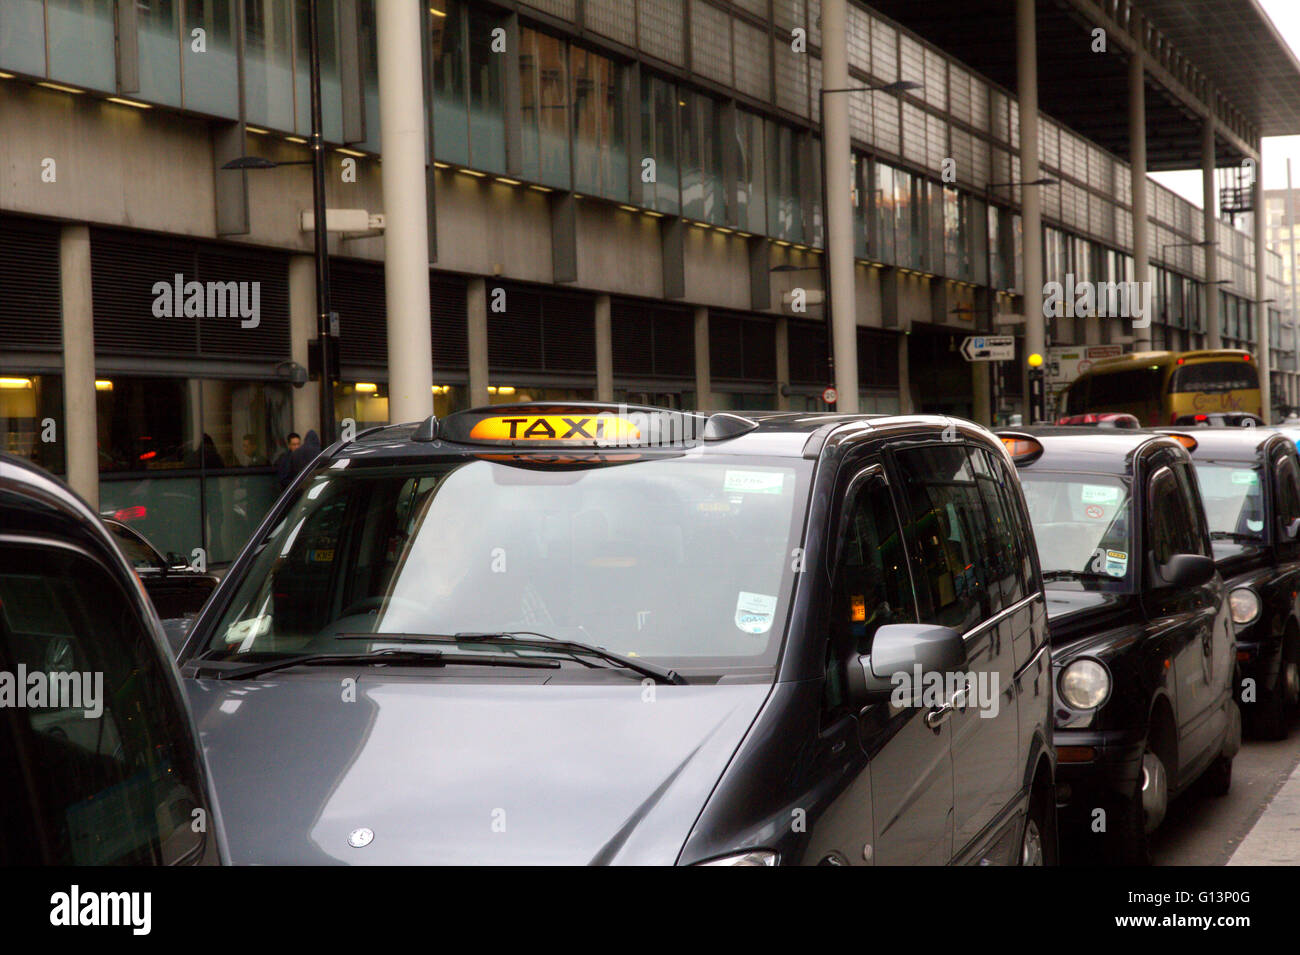 A queue of London black cab taxis in a row at a taxi rank, waiting to pick up passengers near Kings Cross station Stock Photo